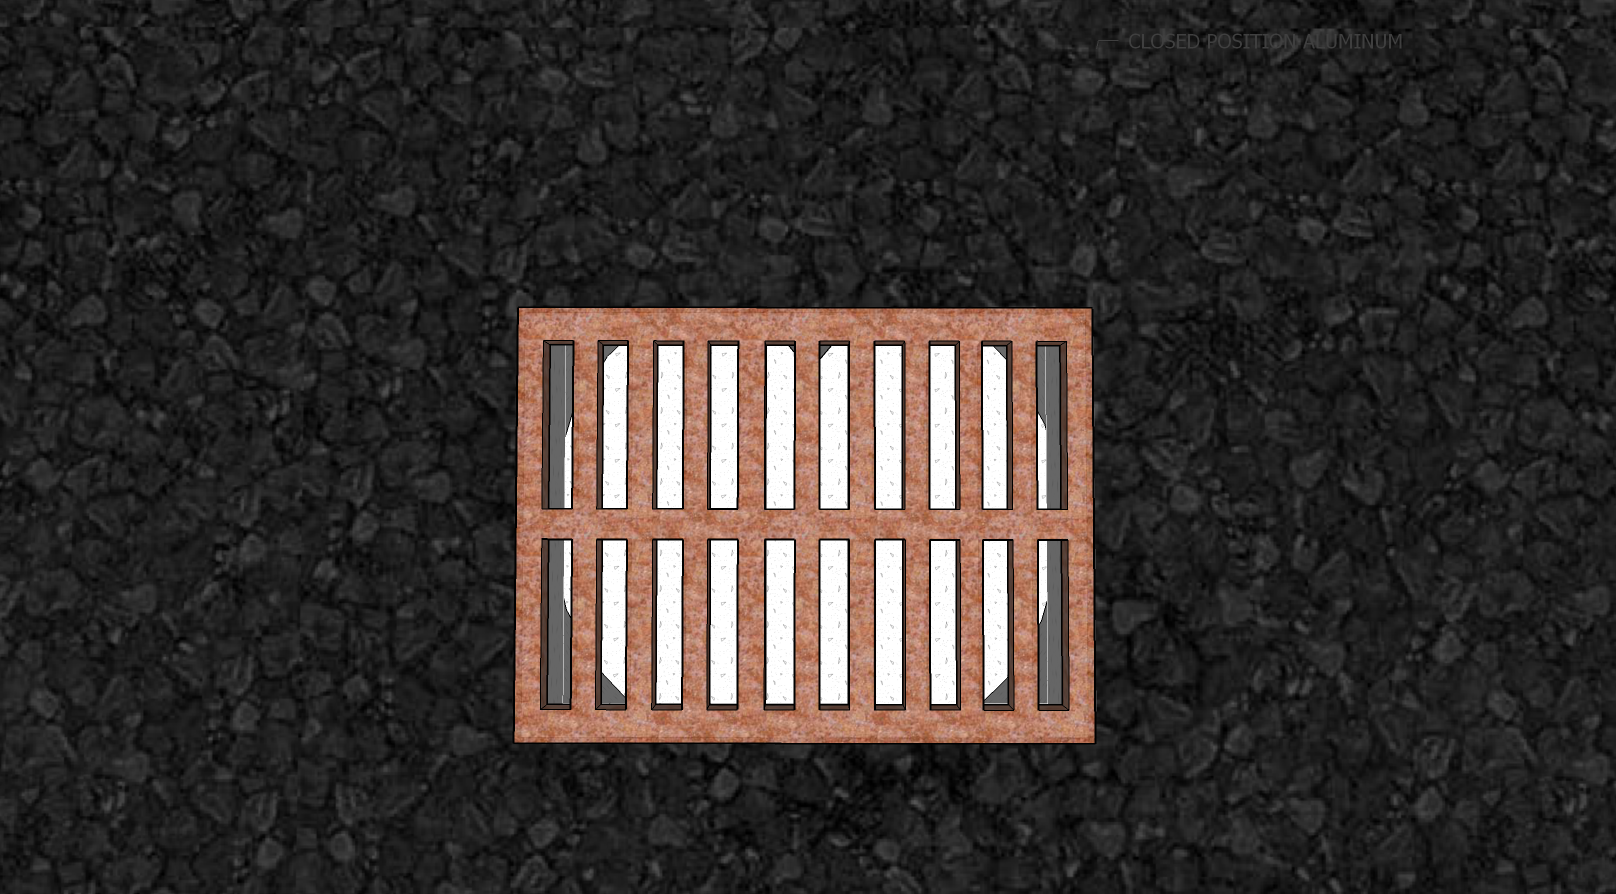 Top View with Grate and Asphalt.png